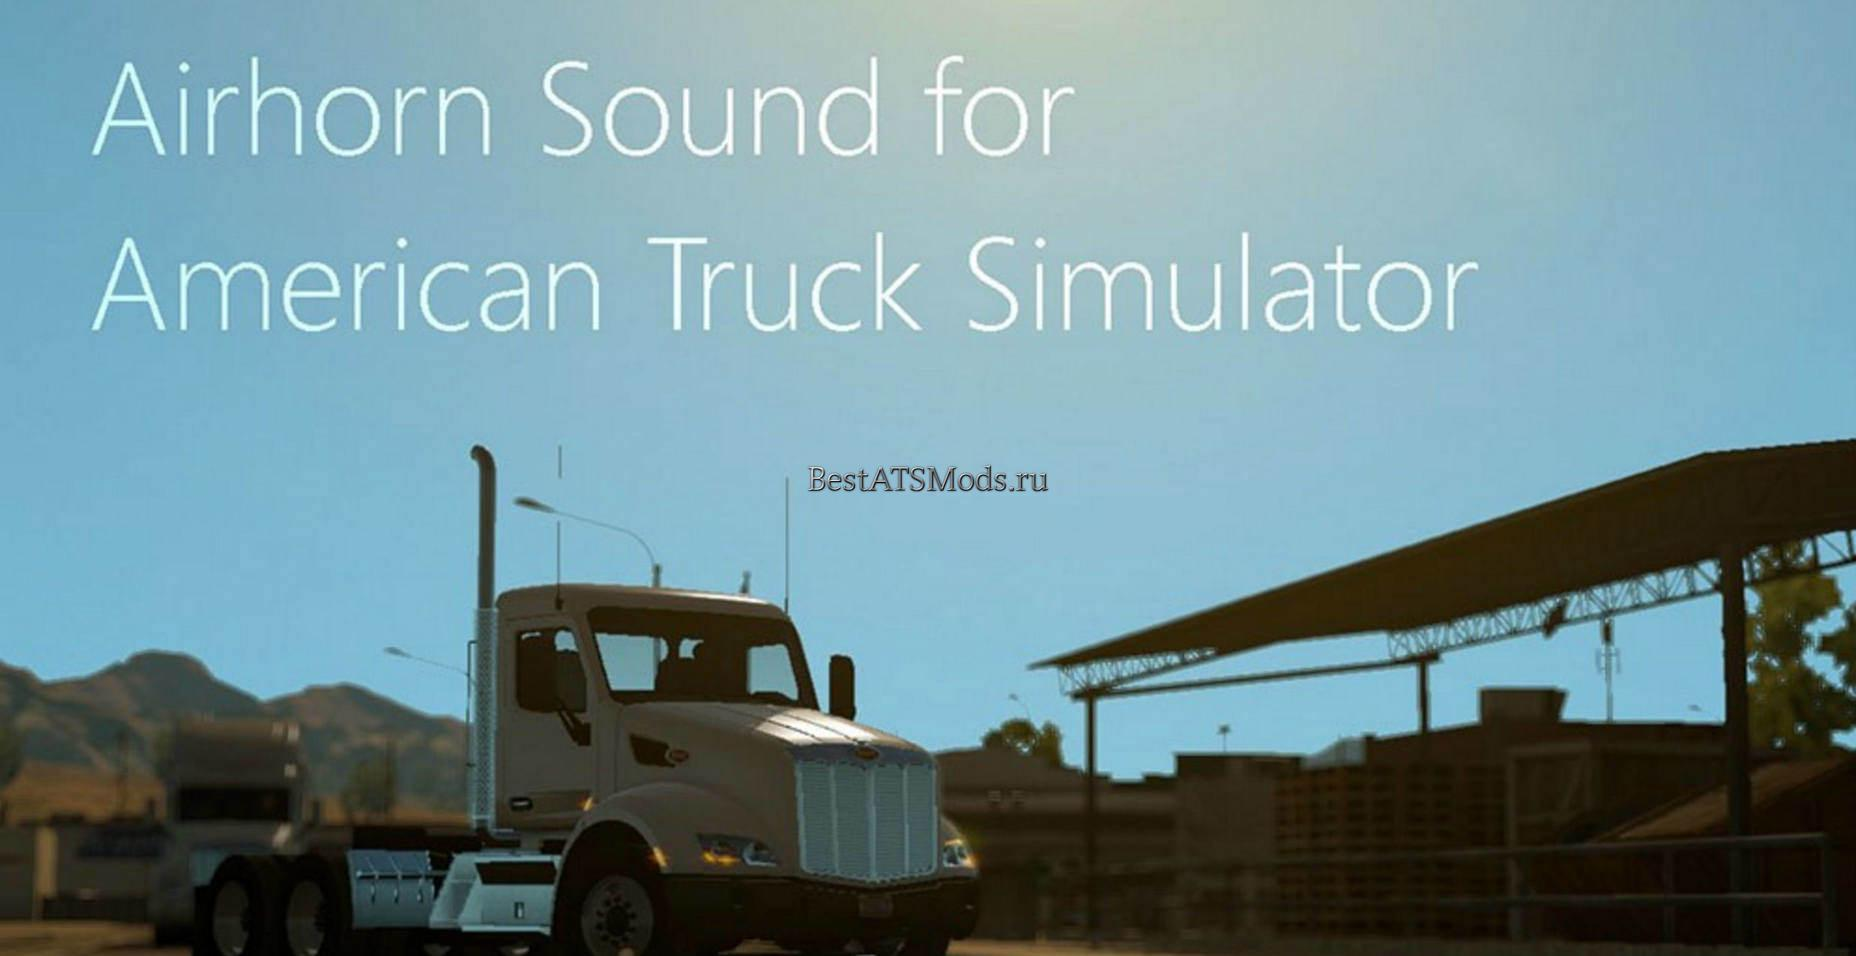 rsz_Мод_звук_airhorn_mod_for_kenworth_t680__peterbilt_579_mod_american_truck_simulator